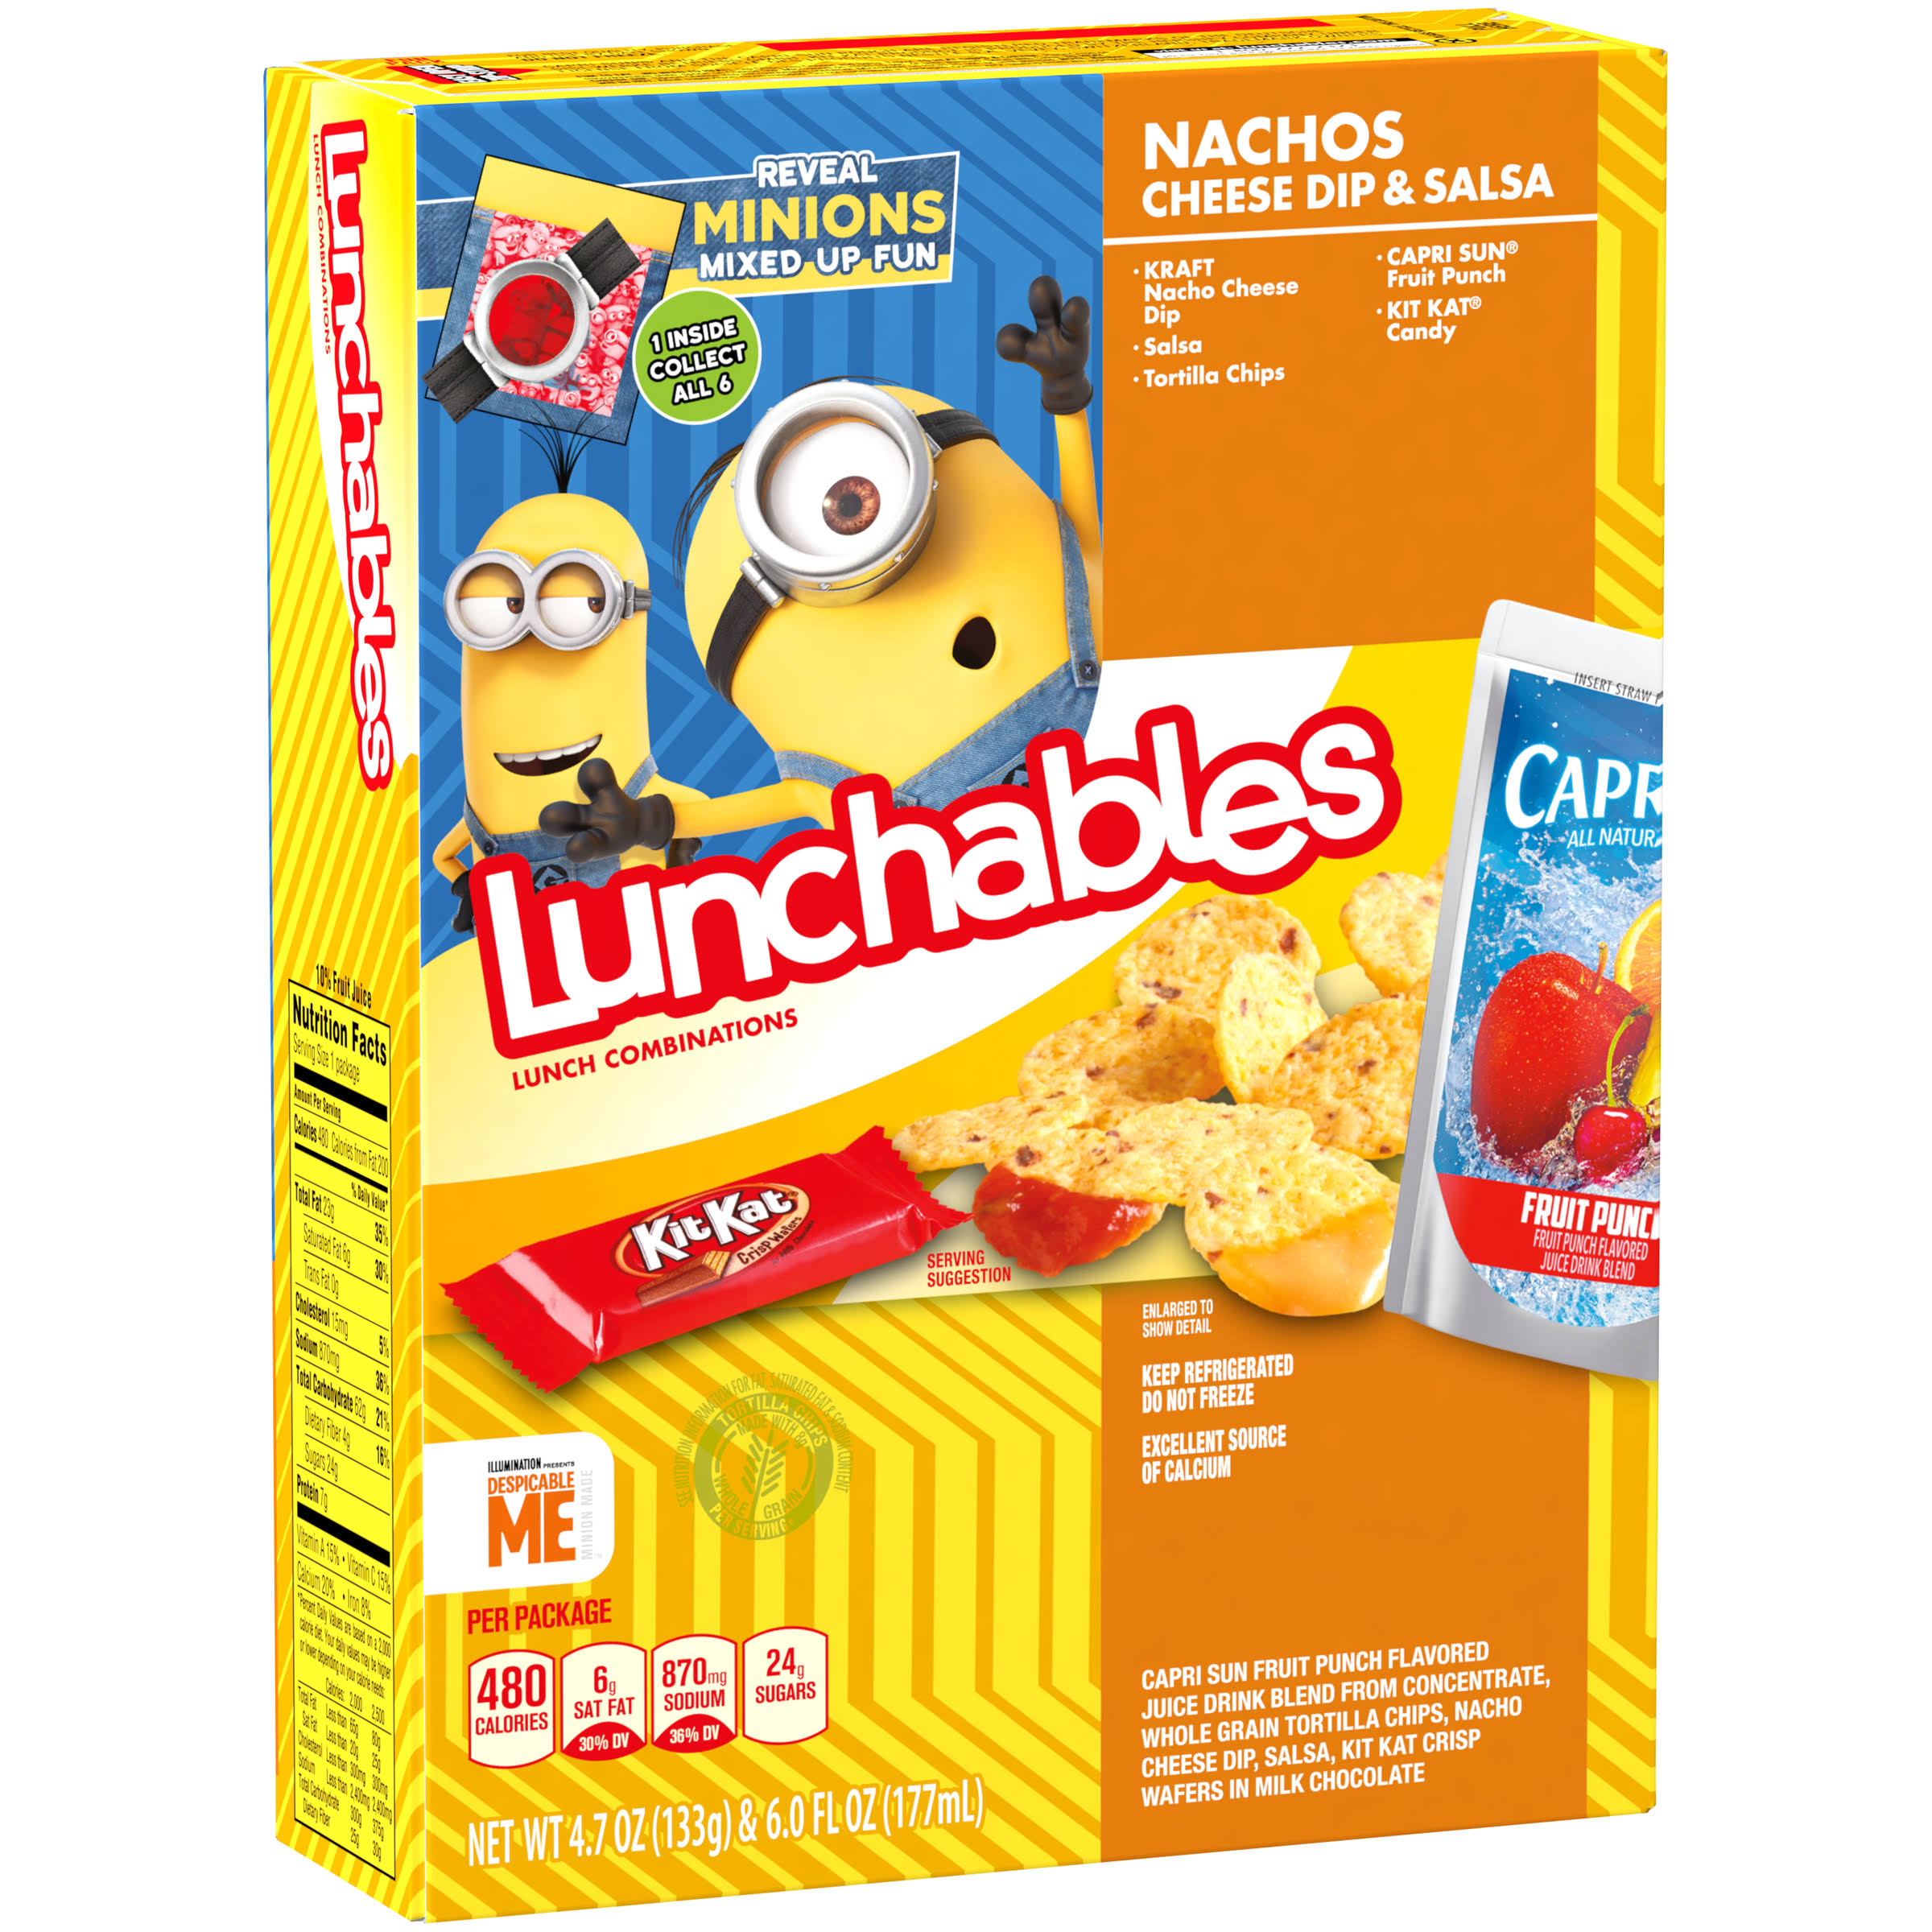 Lunchables Lunch Combinations Nachos Cheese Dip & Salsa - 133g